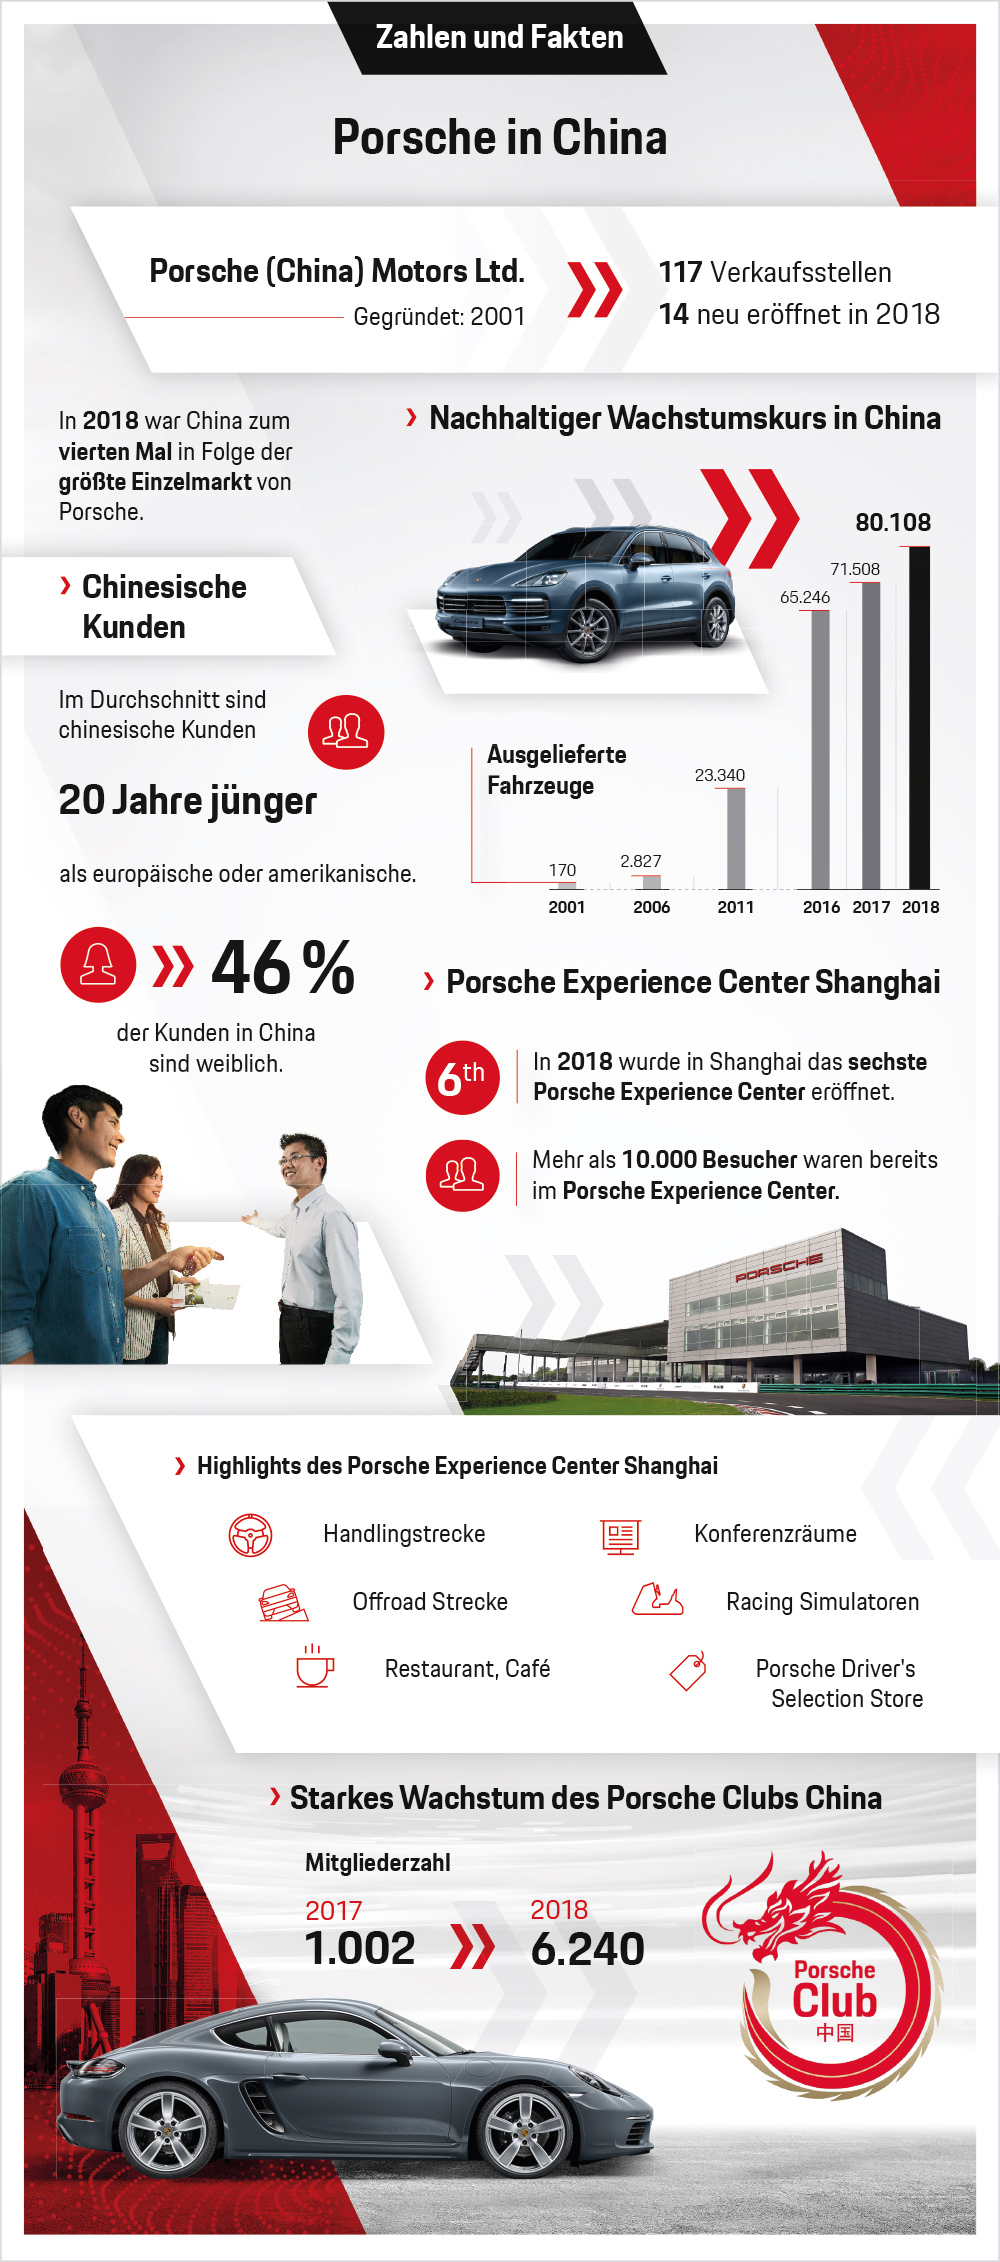 Porsche in China, Infografik, 2019, Porsche AG